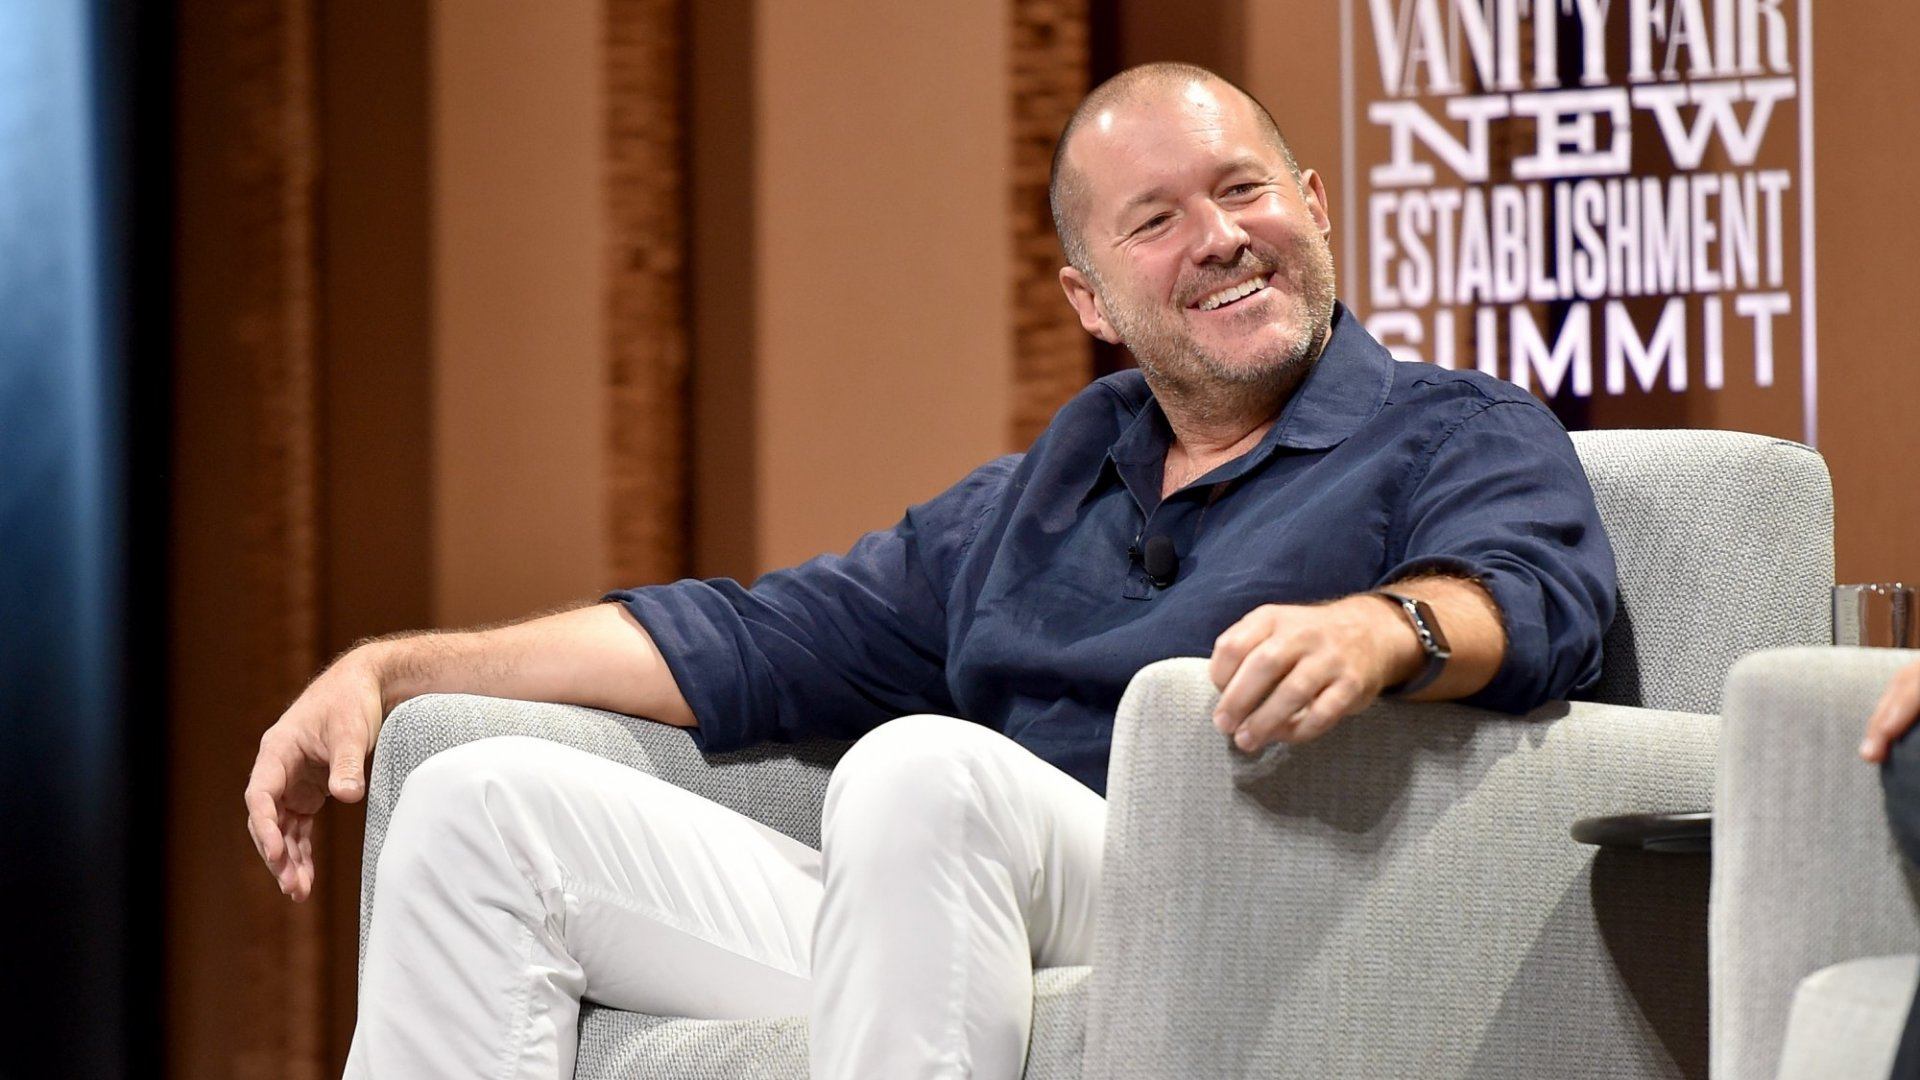 Longtime Design Chief Jony Ive Is Leaving Apple to Start His Own Company